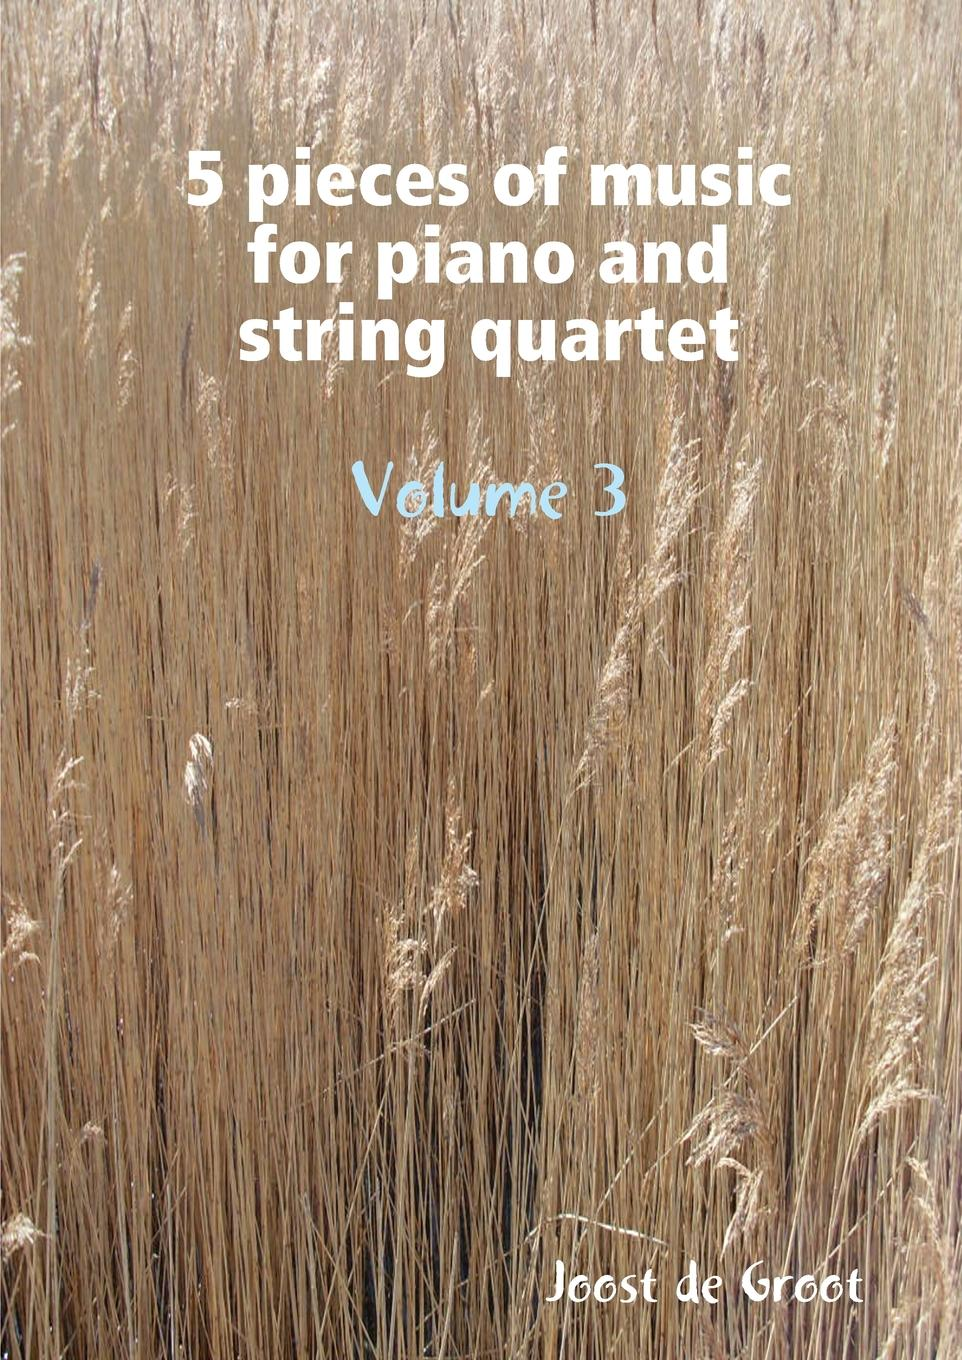 Joost de Groot 5 pieces of music for piano and string quartet Volume 3 5 pieces lot p3020l to220